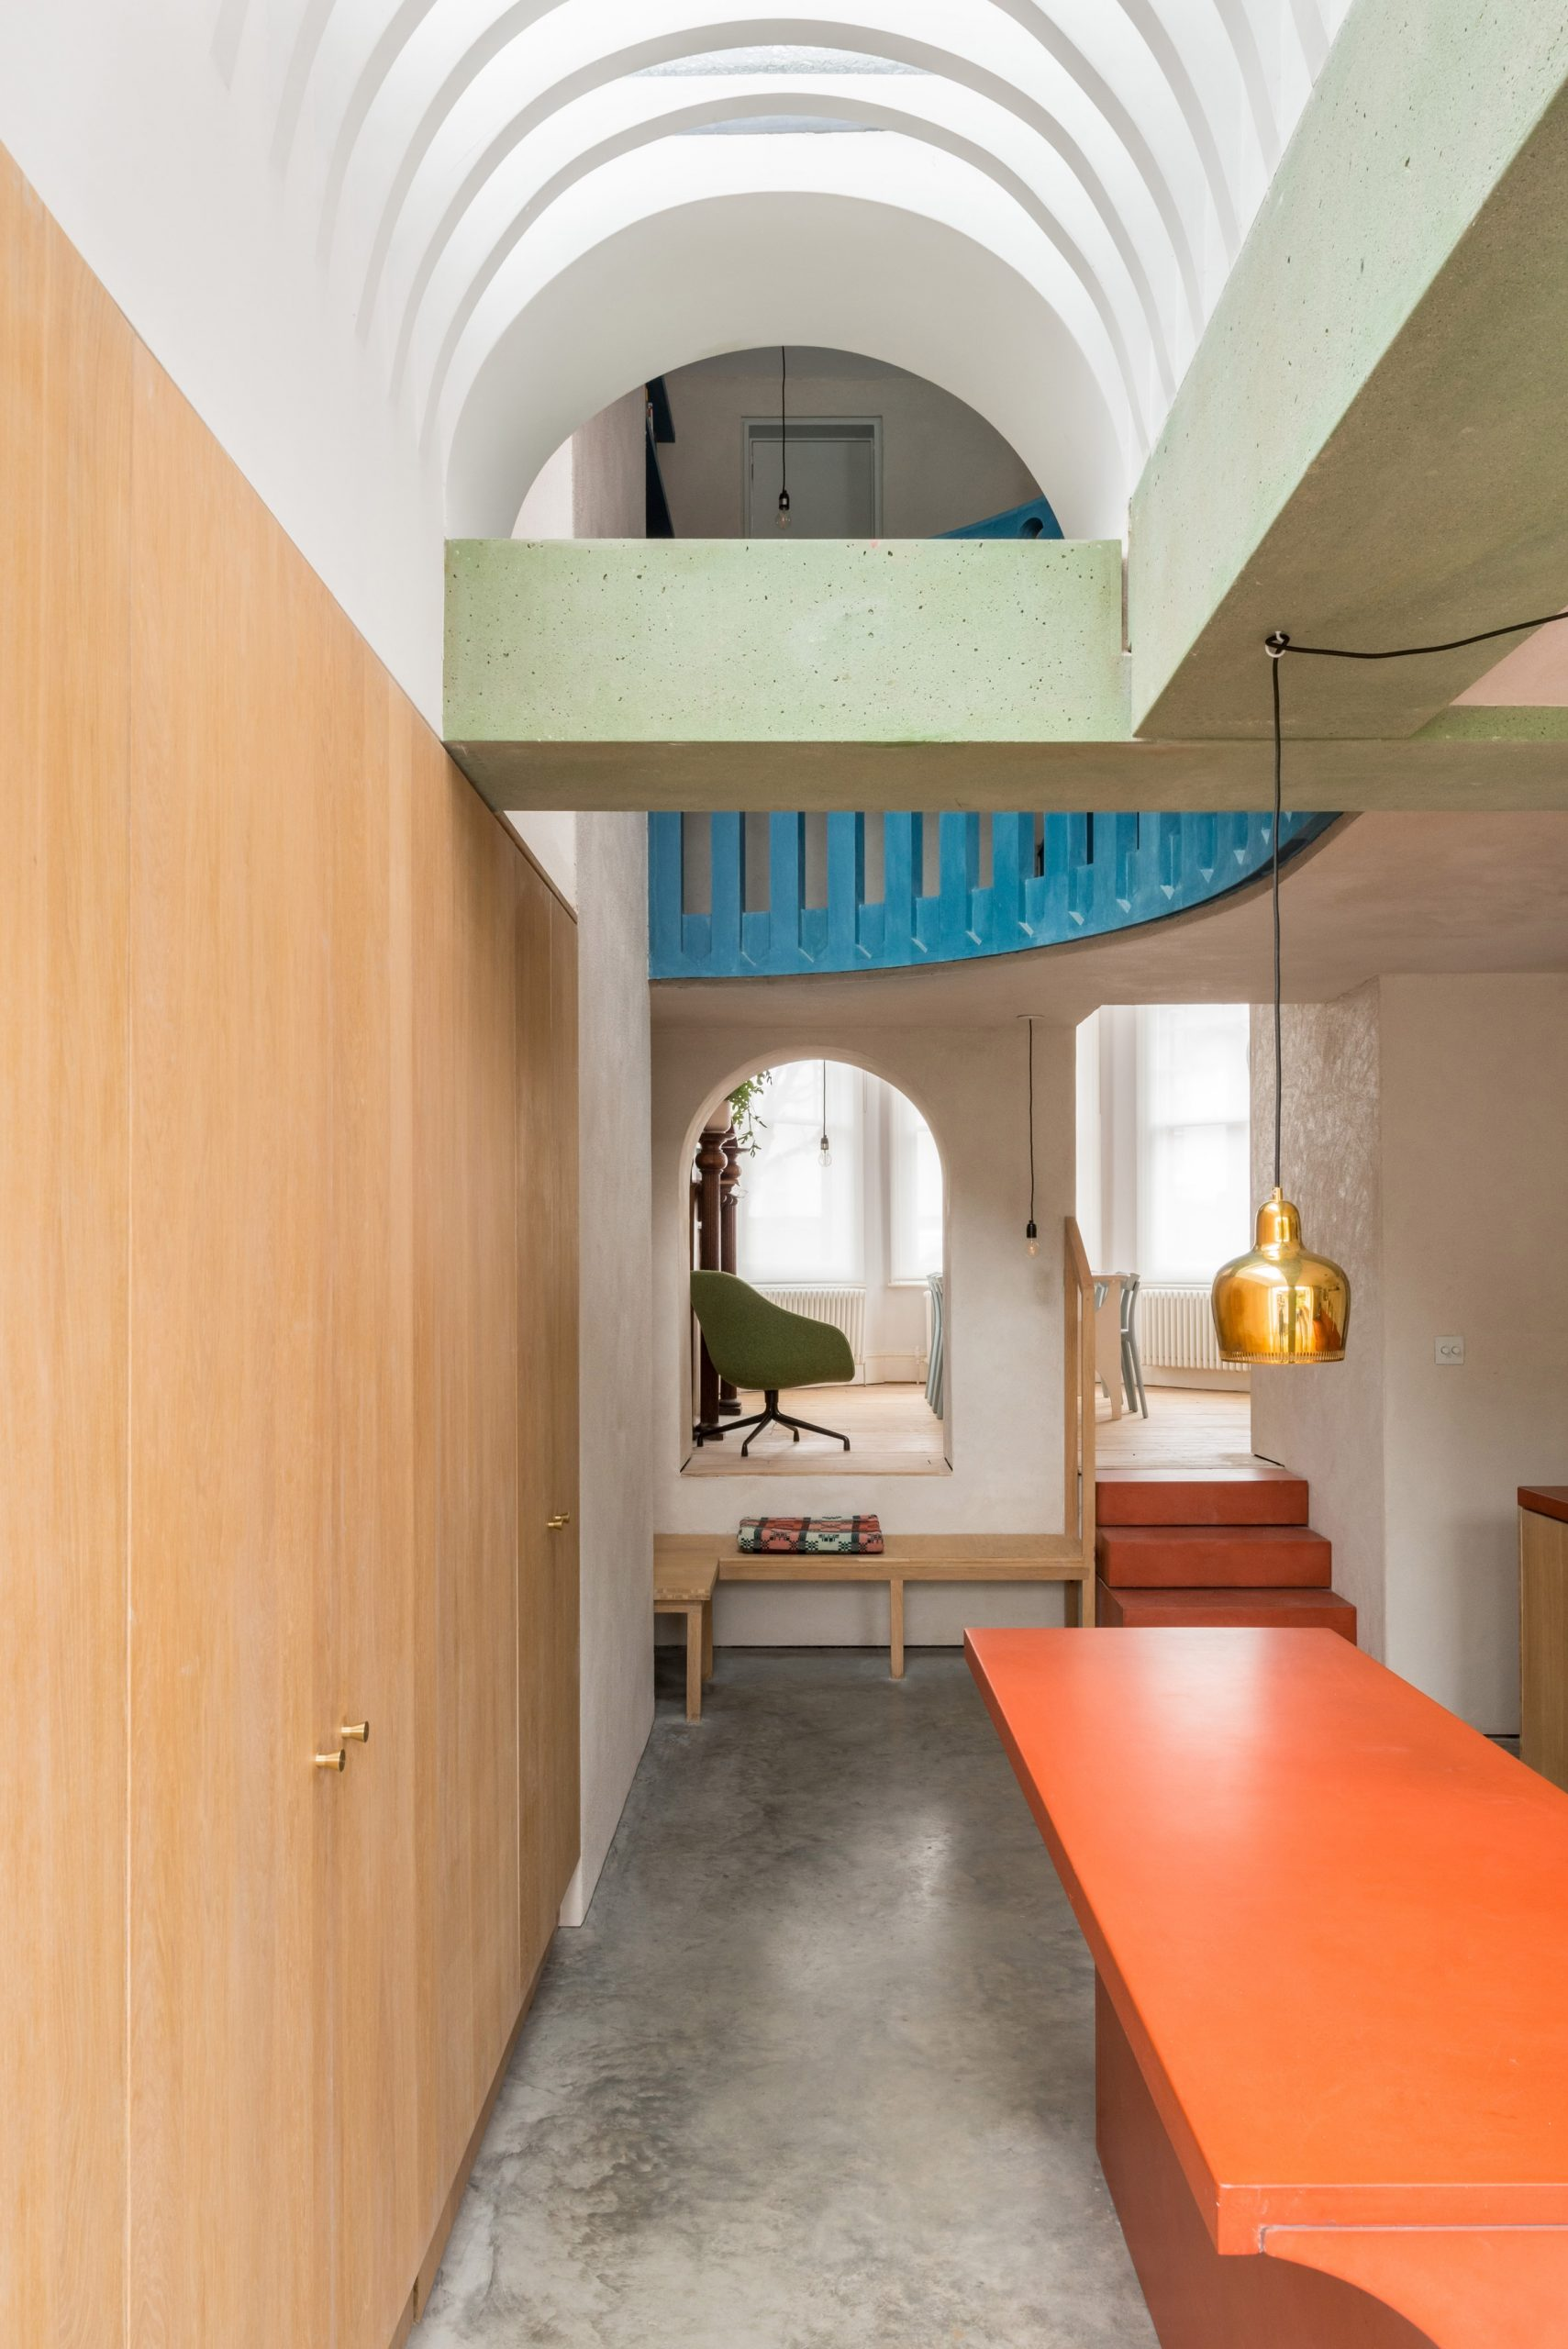 A green beam crosses the ceiling of Recast House